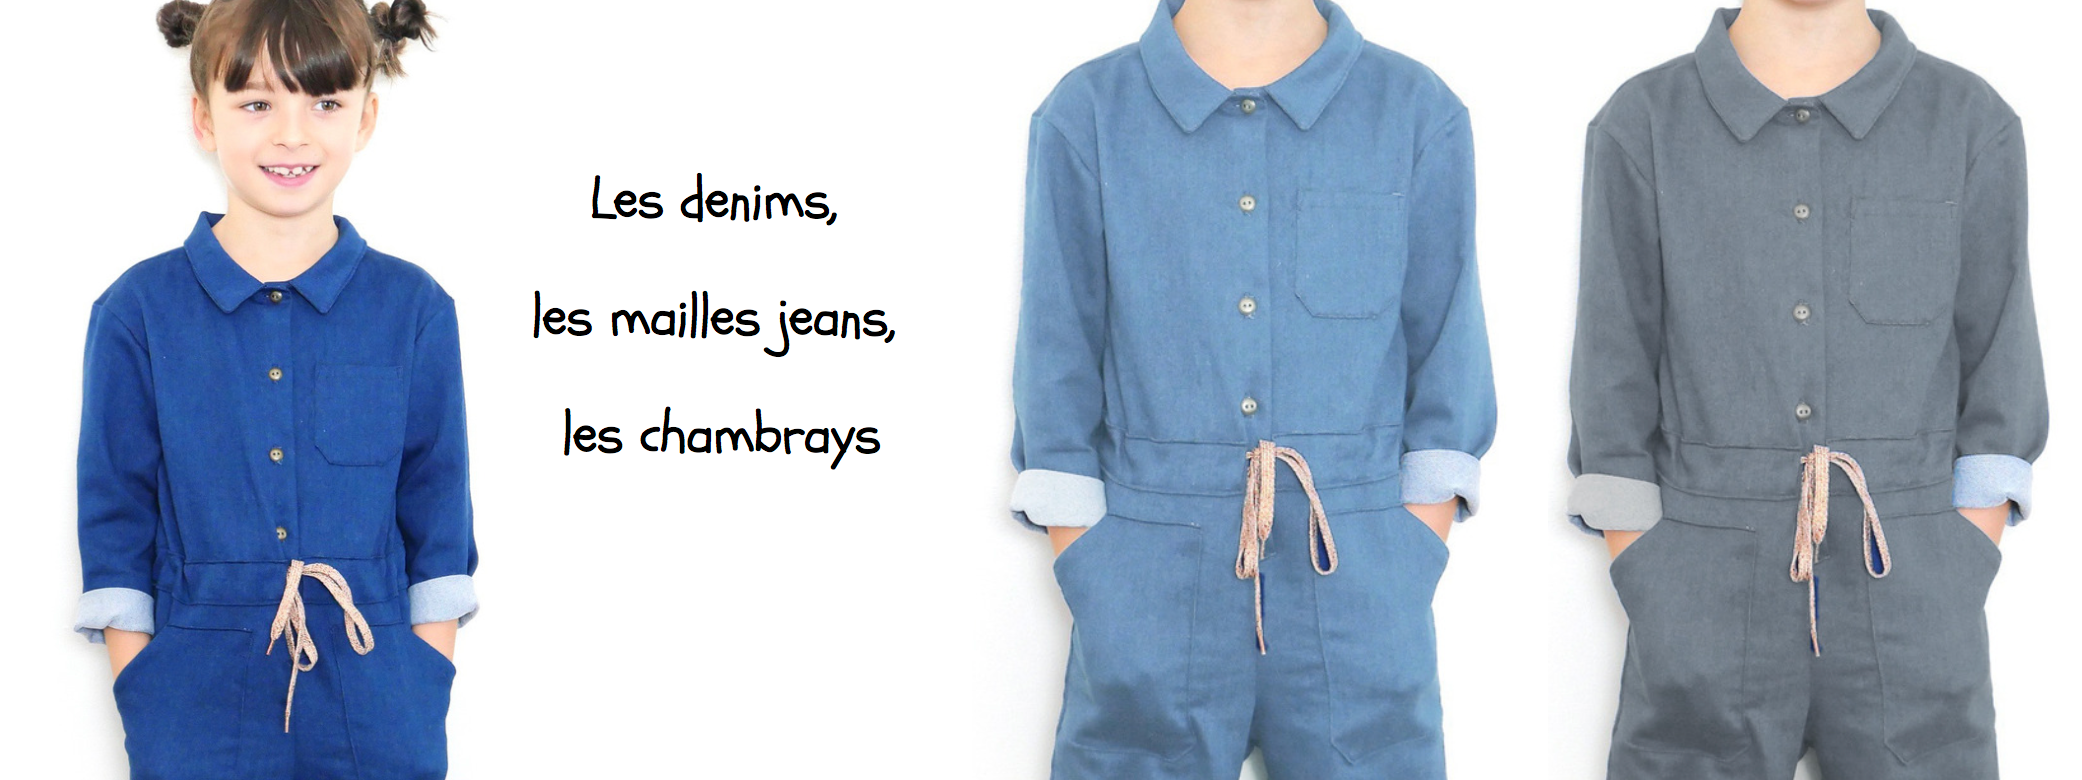 Jeans et chambrays